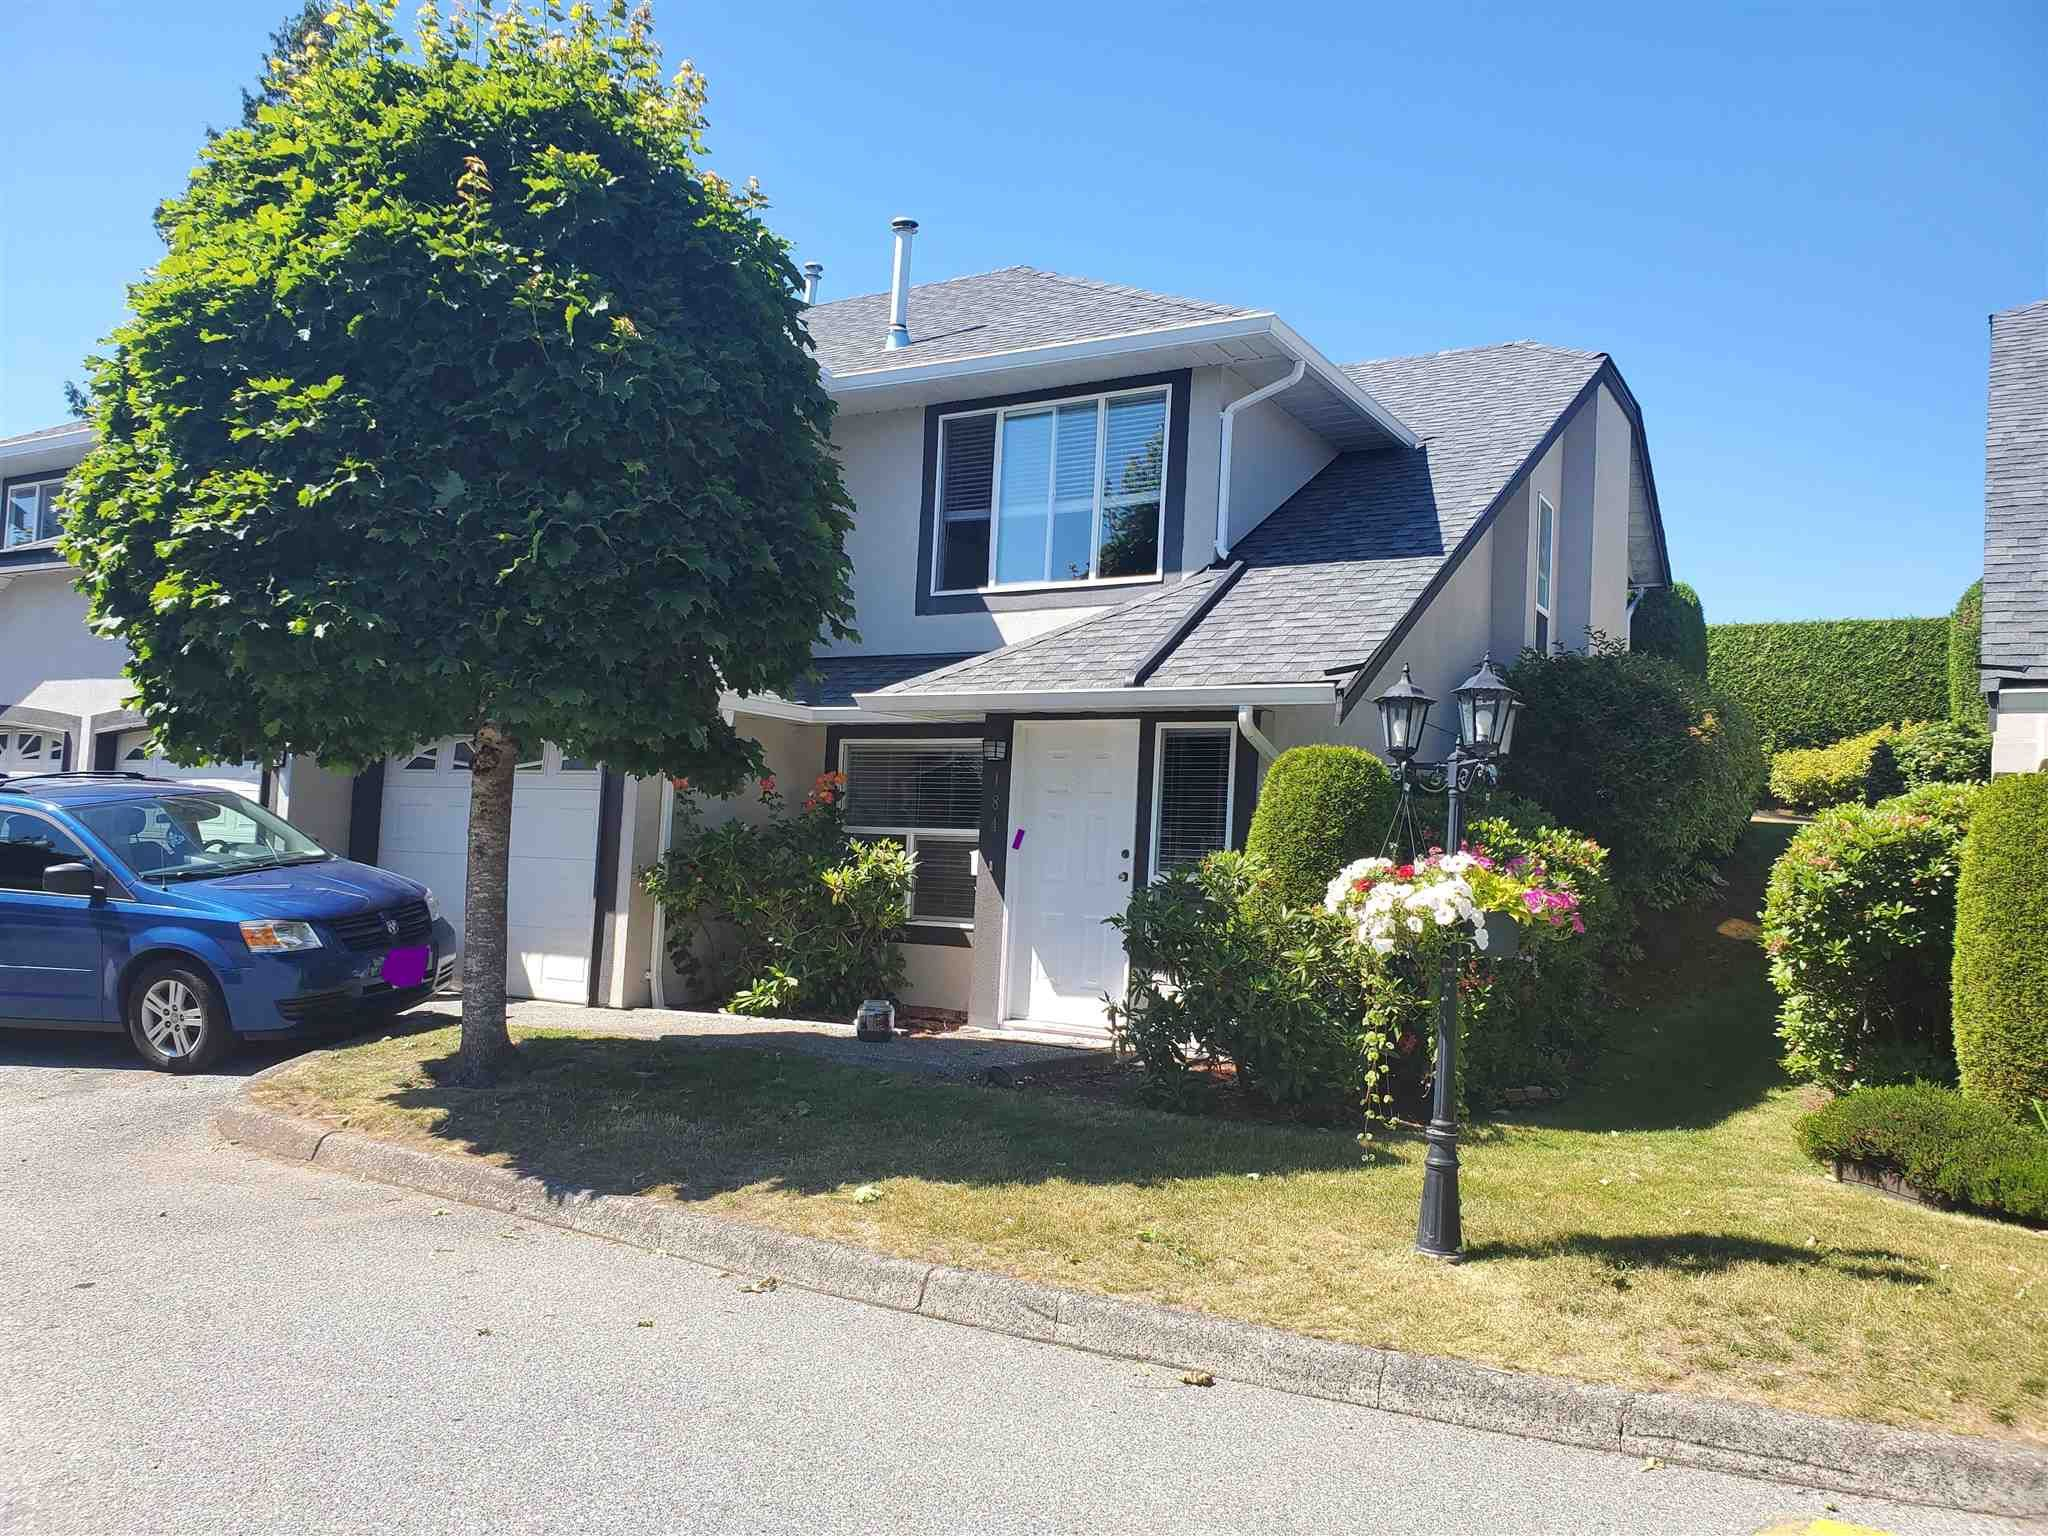 """Main Photo: 184 3160 TOWNLINE Road in Abbotsford: Abbotsford West Townhouse for sale in """"SOUTHPOINT RIDGE"""" : MLS®# R2594630"""